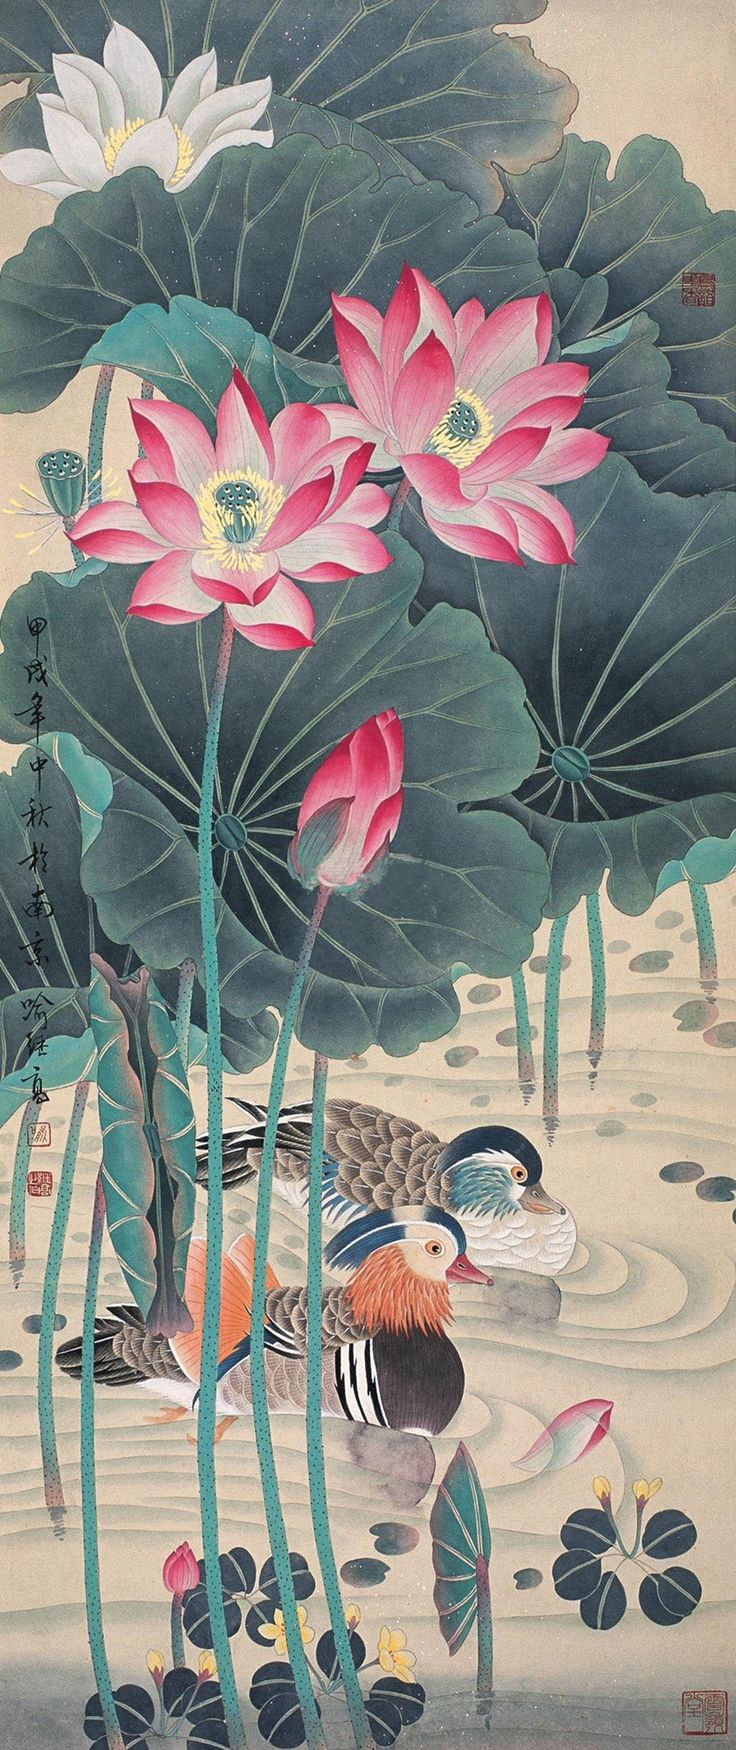 A loving couple of mandarin ducks swim side by side in a lotus pond, traditional Chinese Meticulous-style ink painting by contemporary Chinese artist Yu Jigao (喻继高)